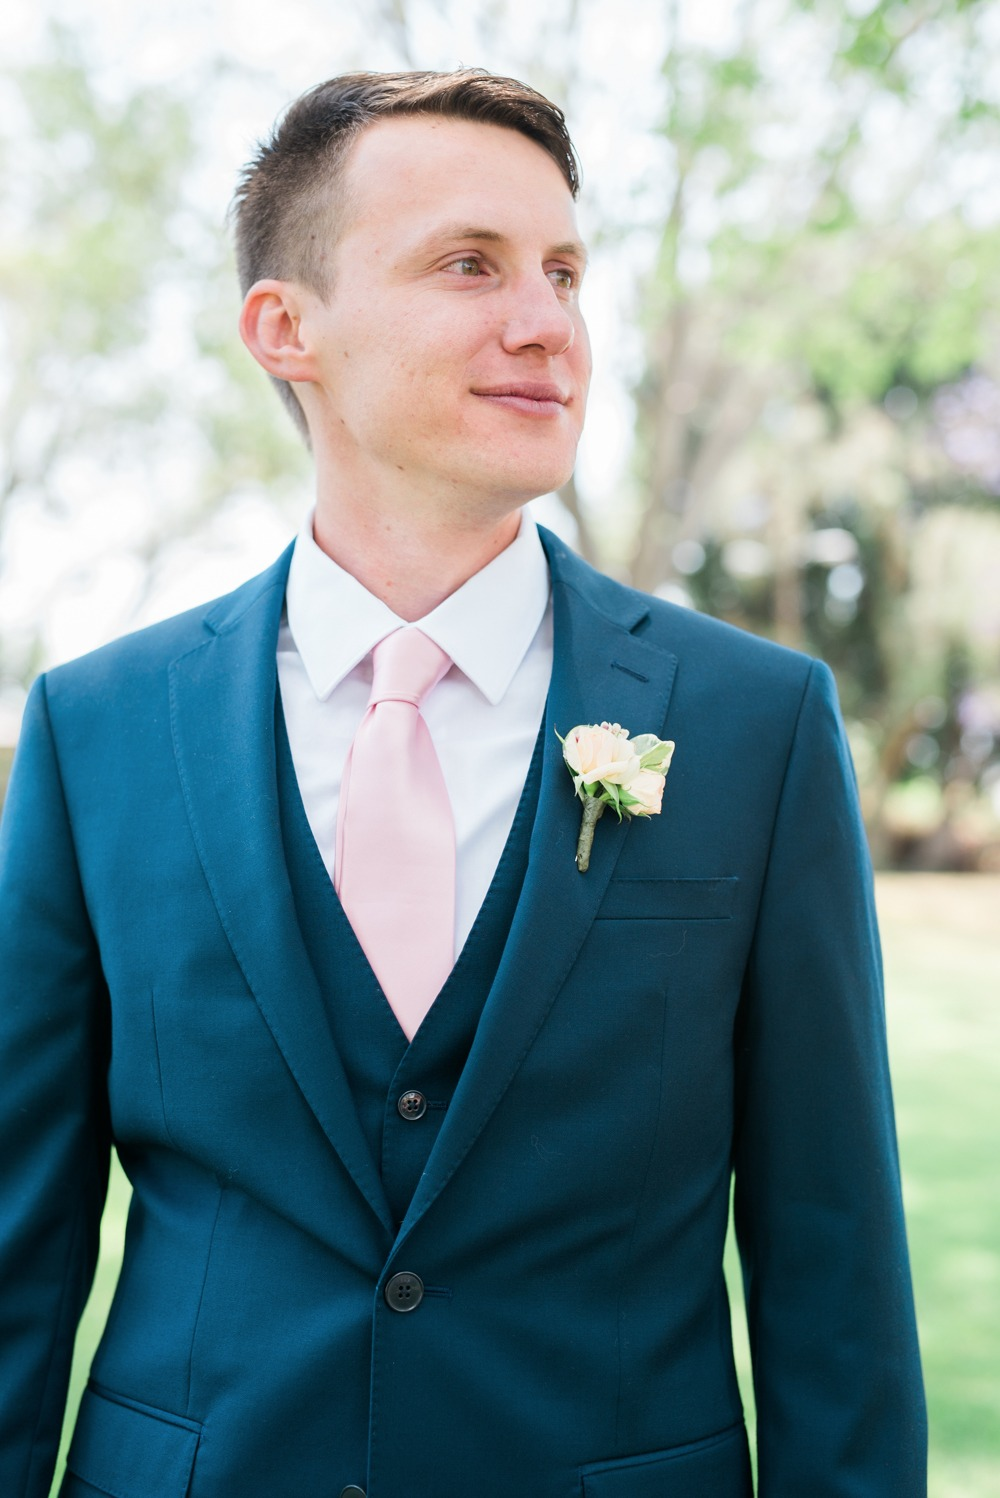 Groom look in Navy with blush tie